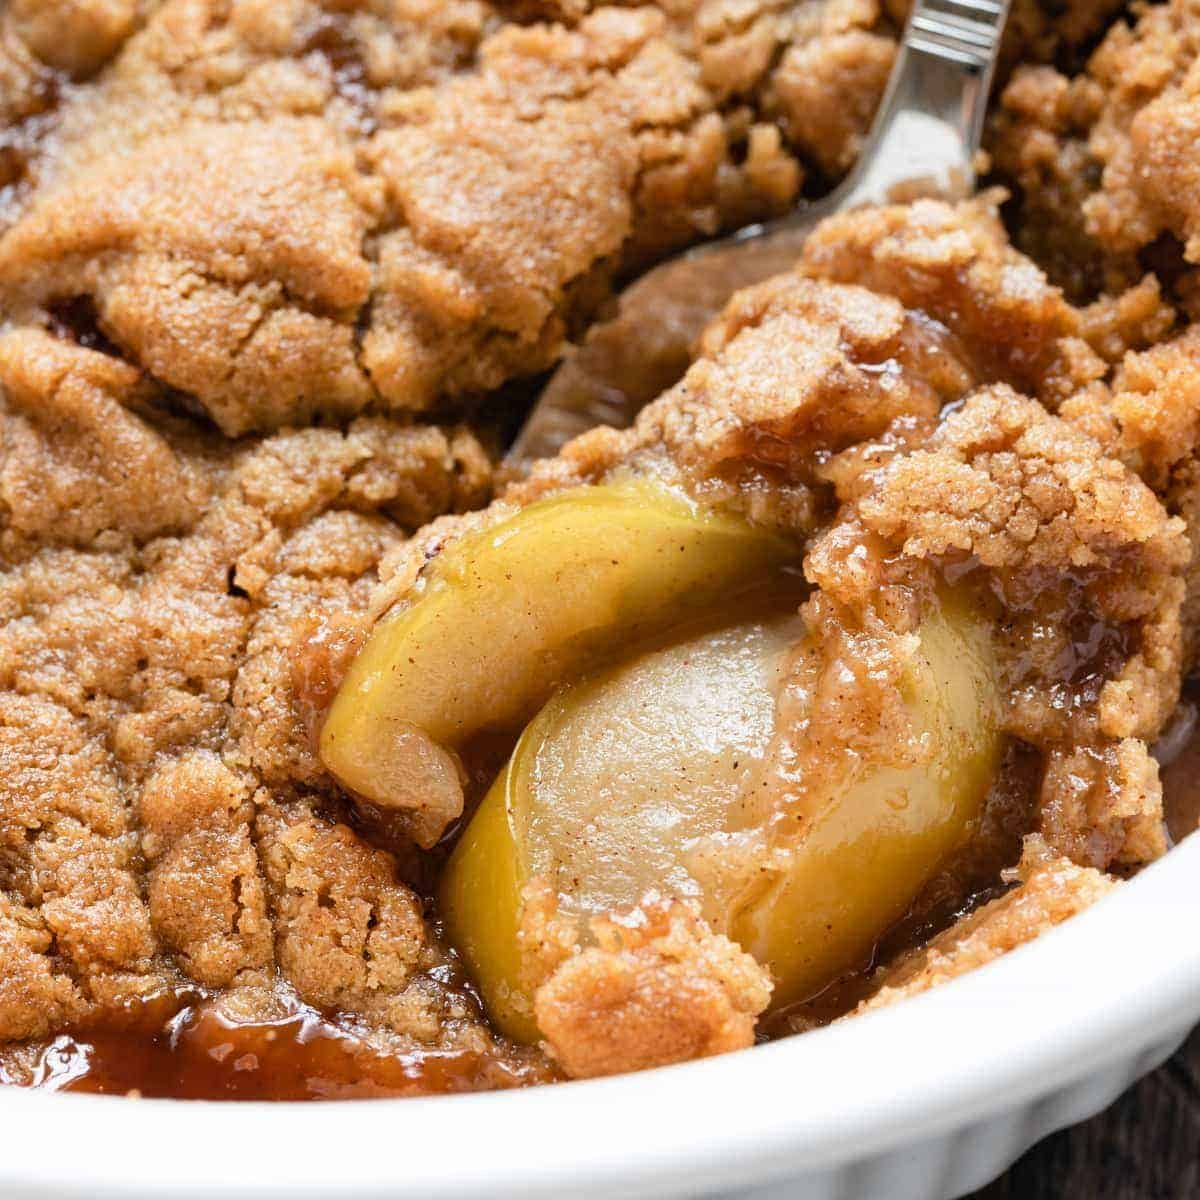 apple crumble in a casserole dish with a spoon scooping some out